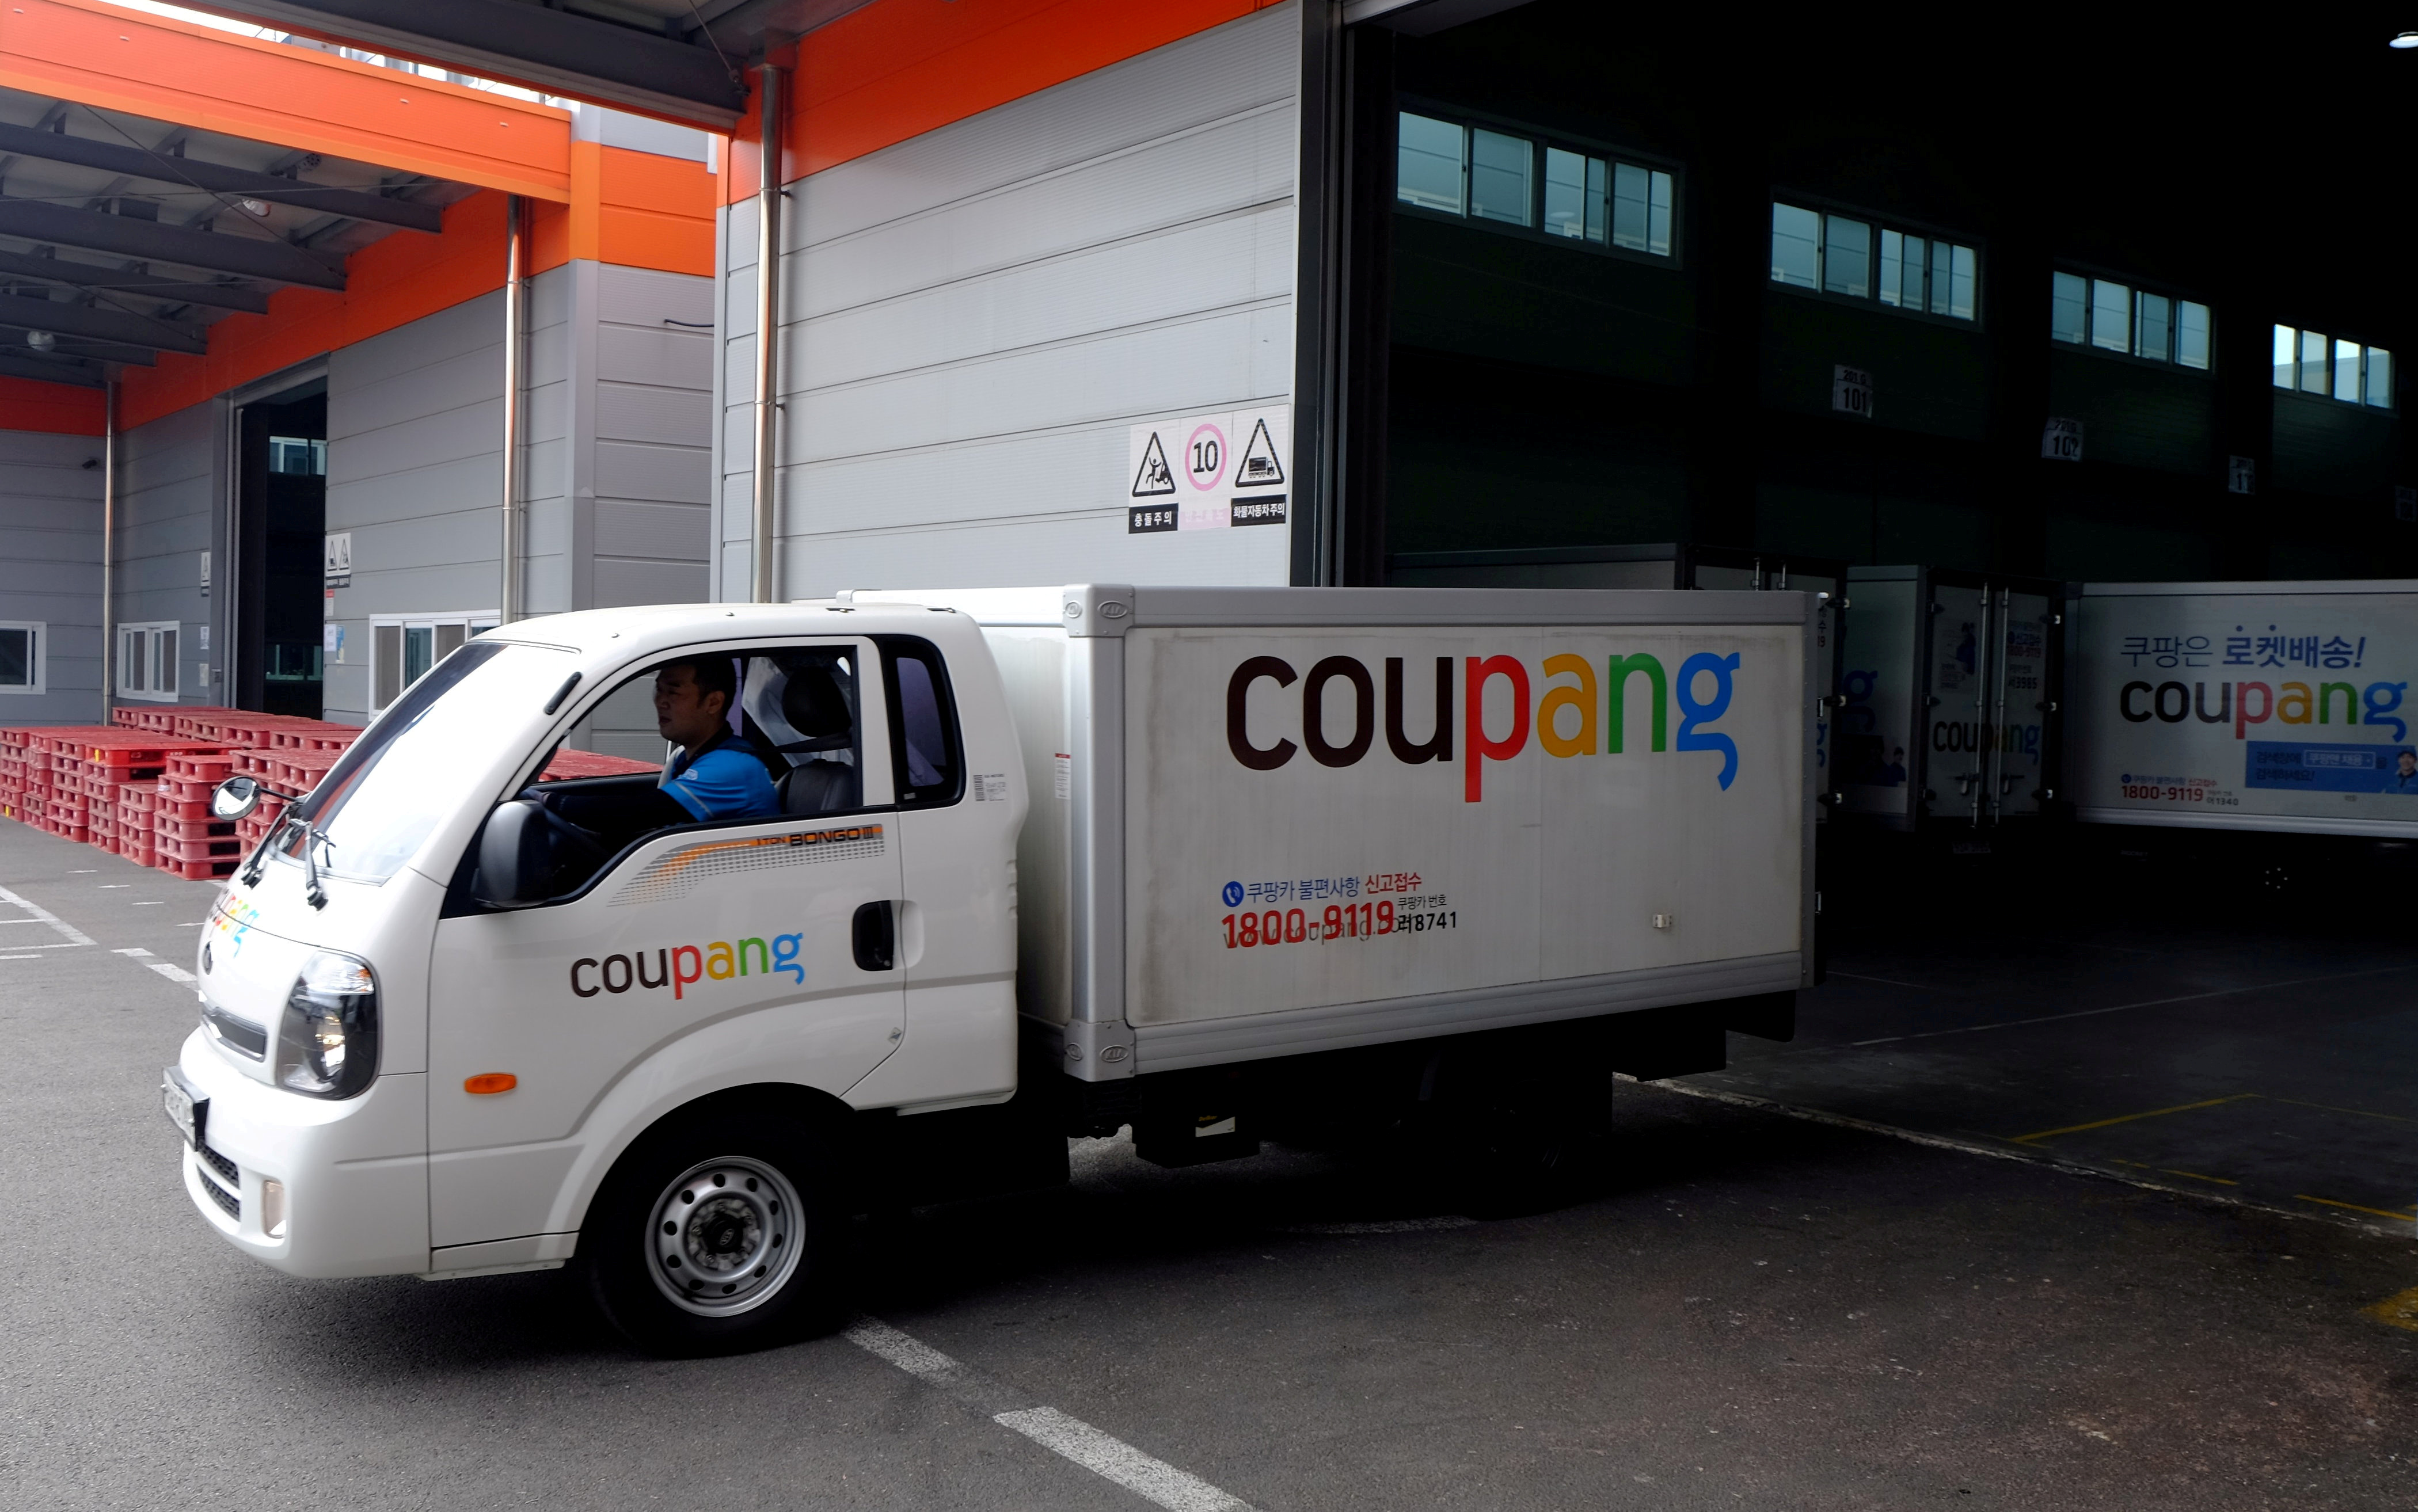 A Coupang delivery truck sets out for its destination.